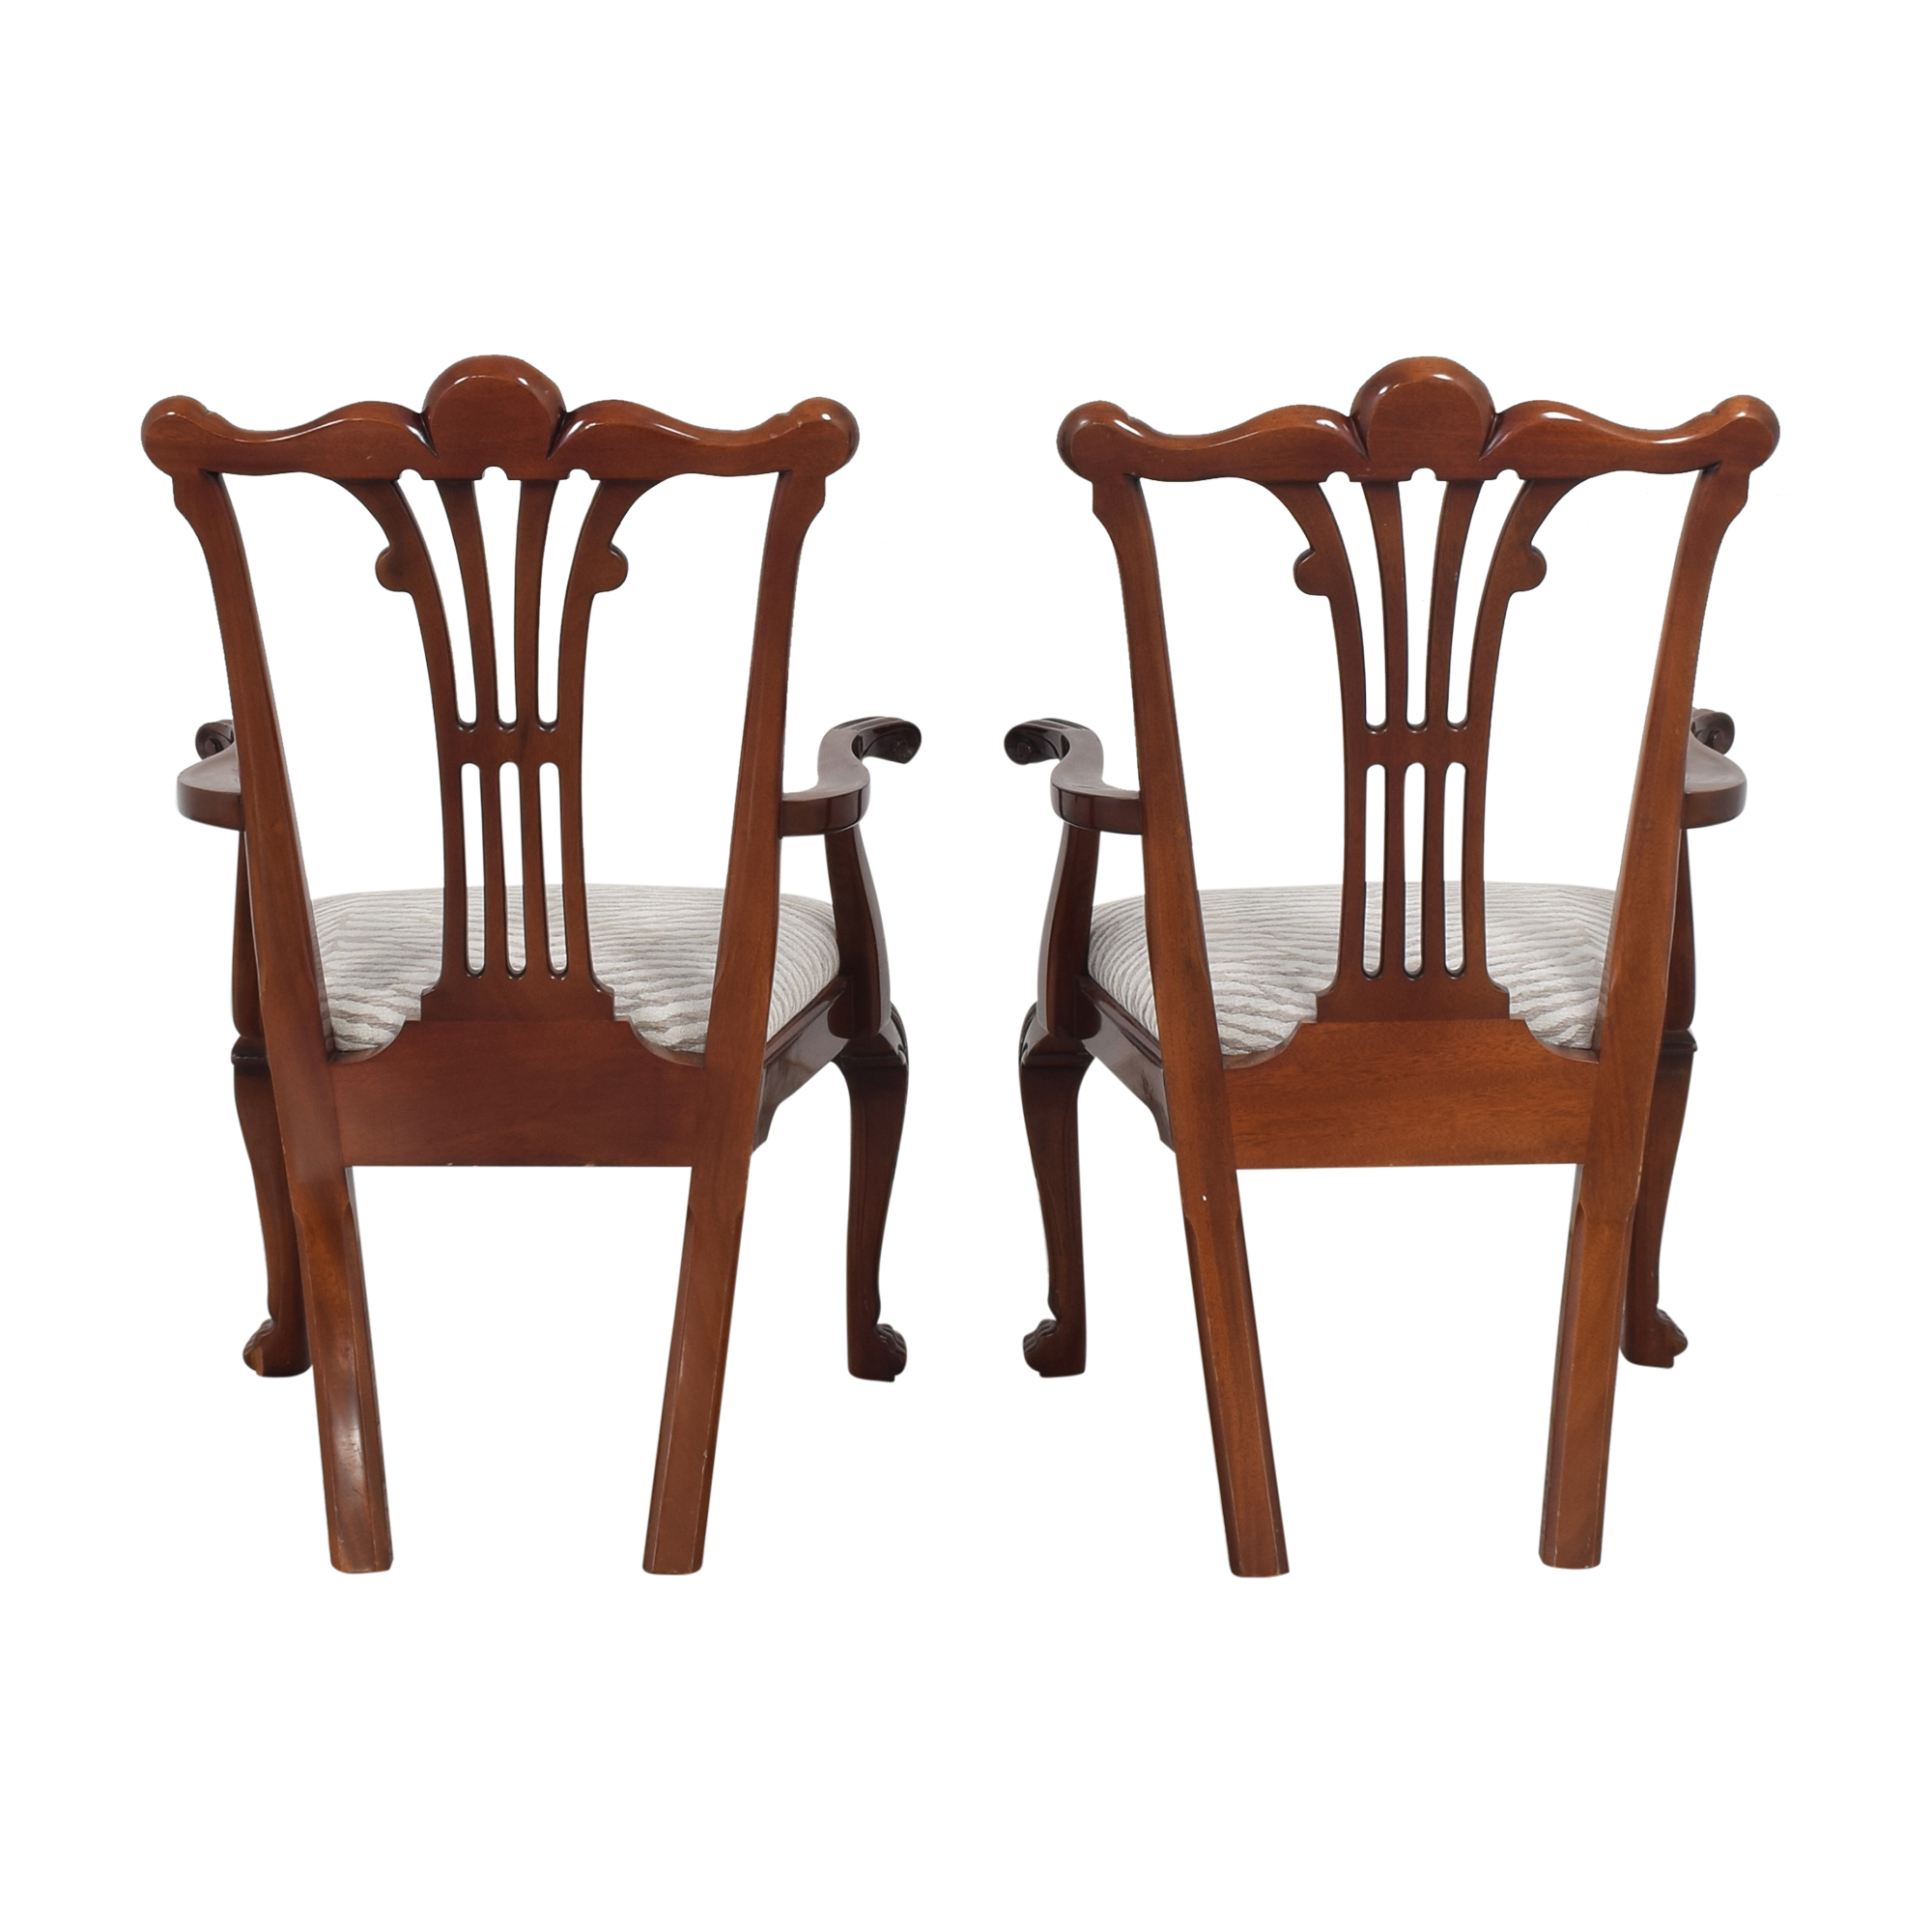 Kindel Kindel Chippendale-Style Dining Arm Chairs ct